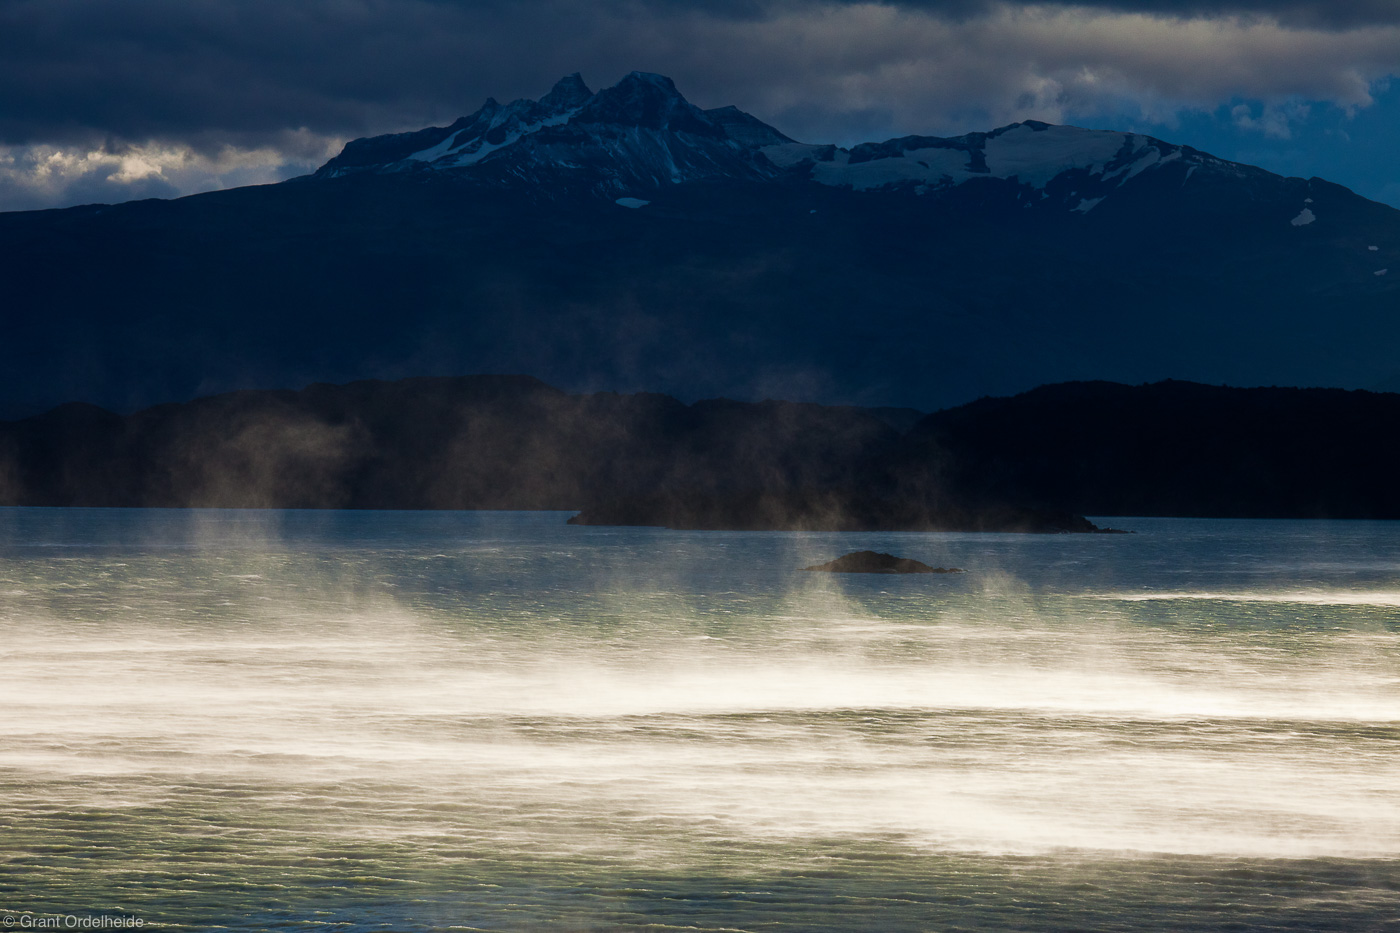 Nordenskjold, wind, water, massive, blown, lago, southern, patagonaian, region, magallanes, strong, torres, del, paine, , photo